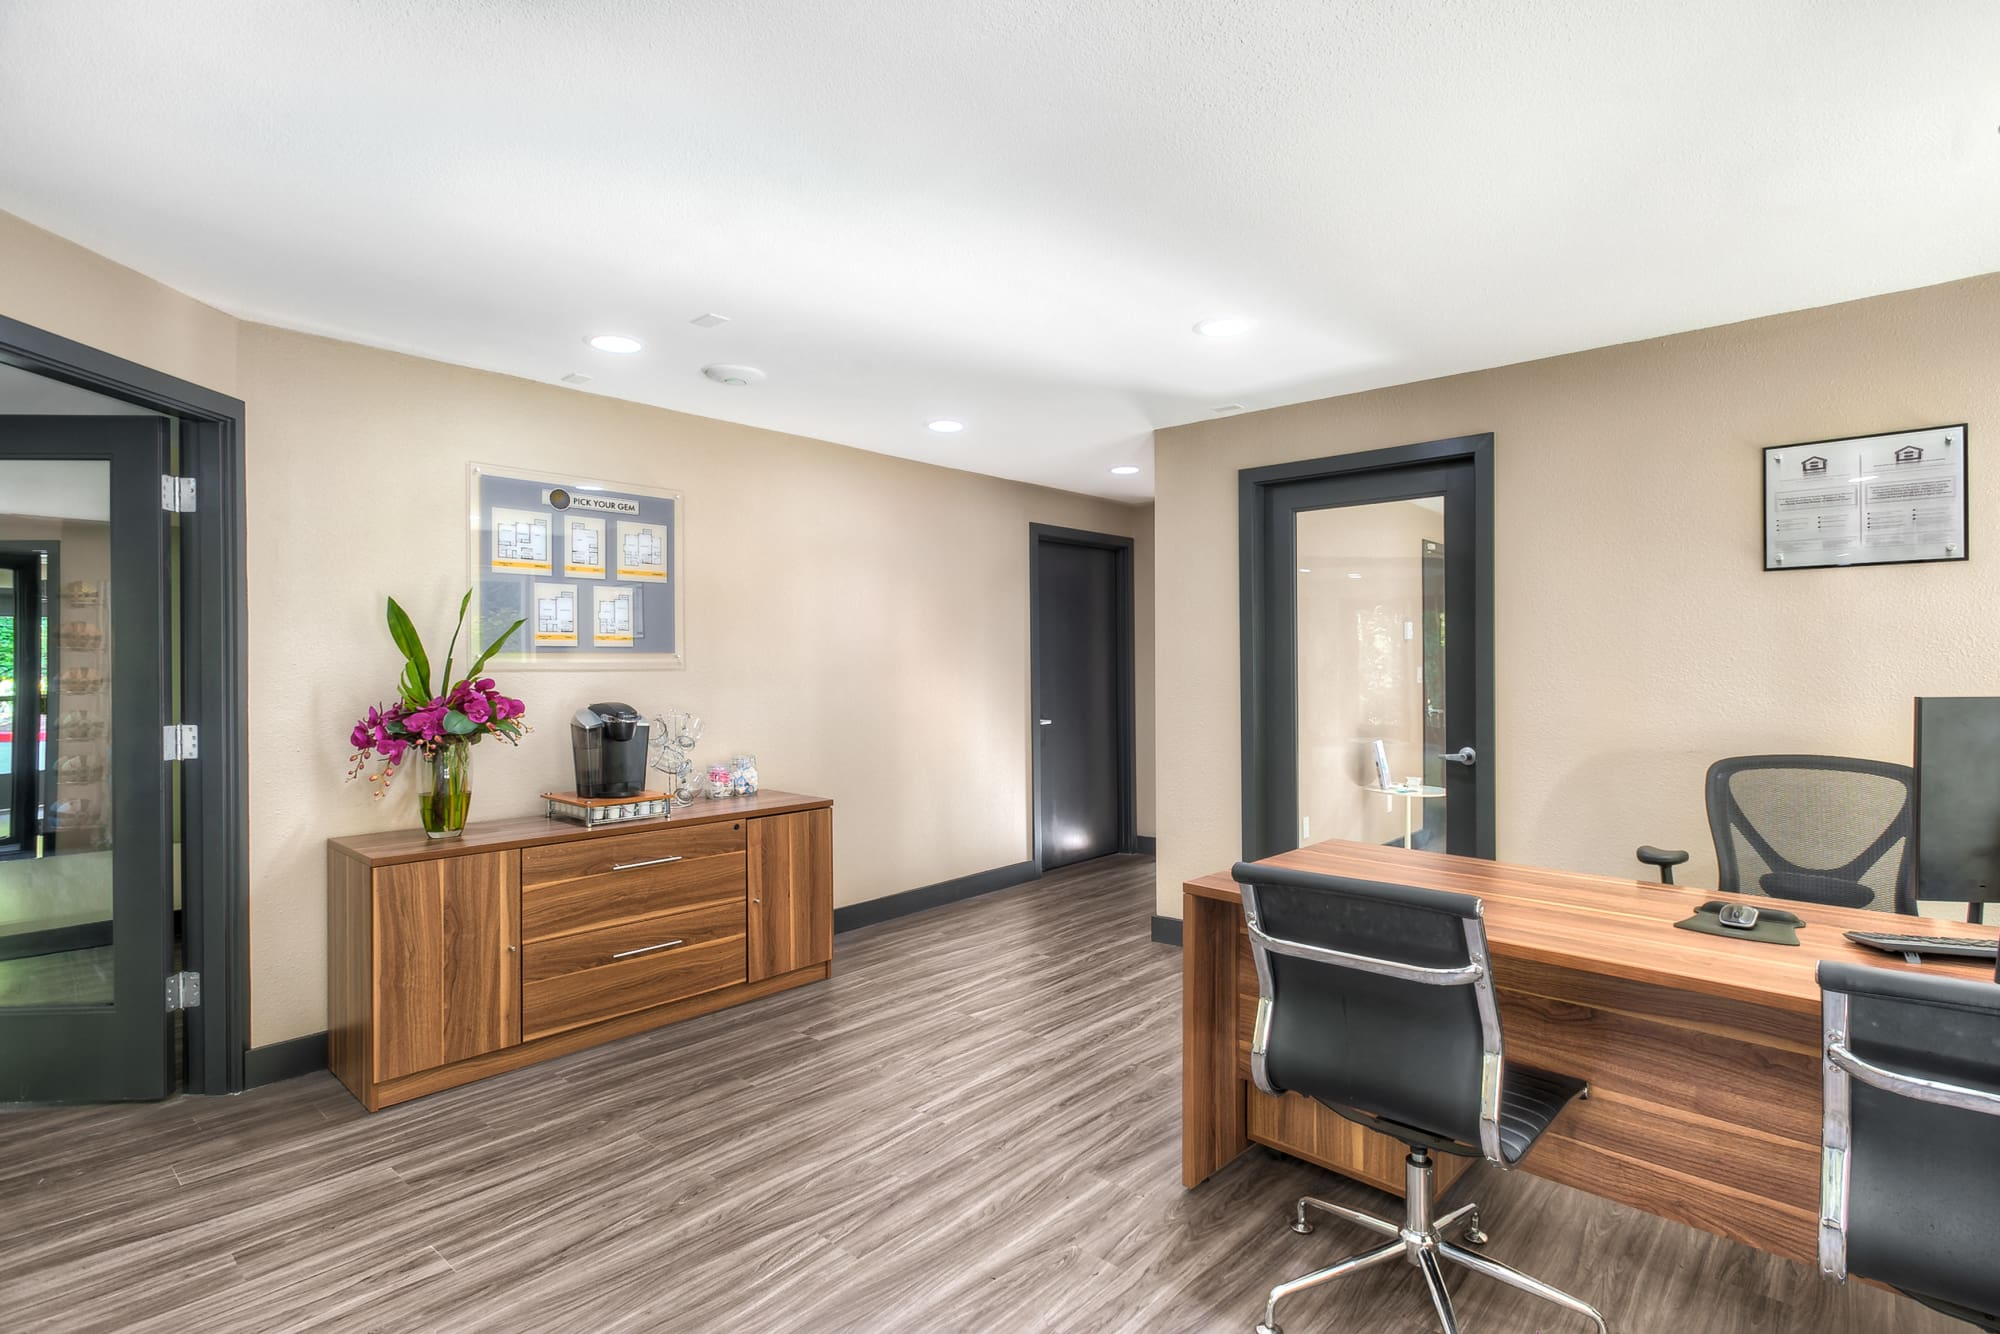 Recently renovated leasing office at Karbon Apartments in Newcastle, Washington